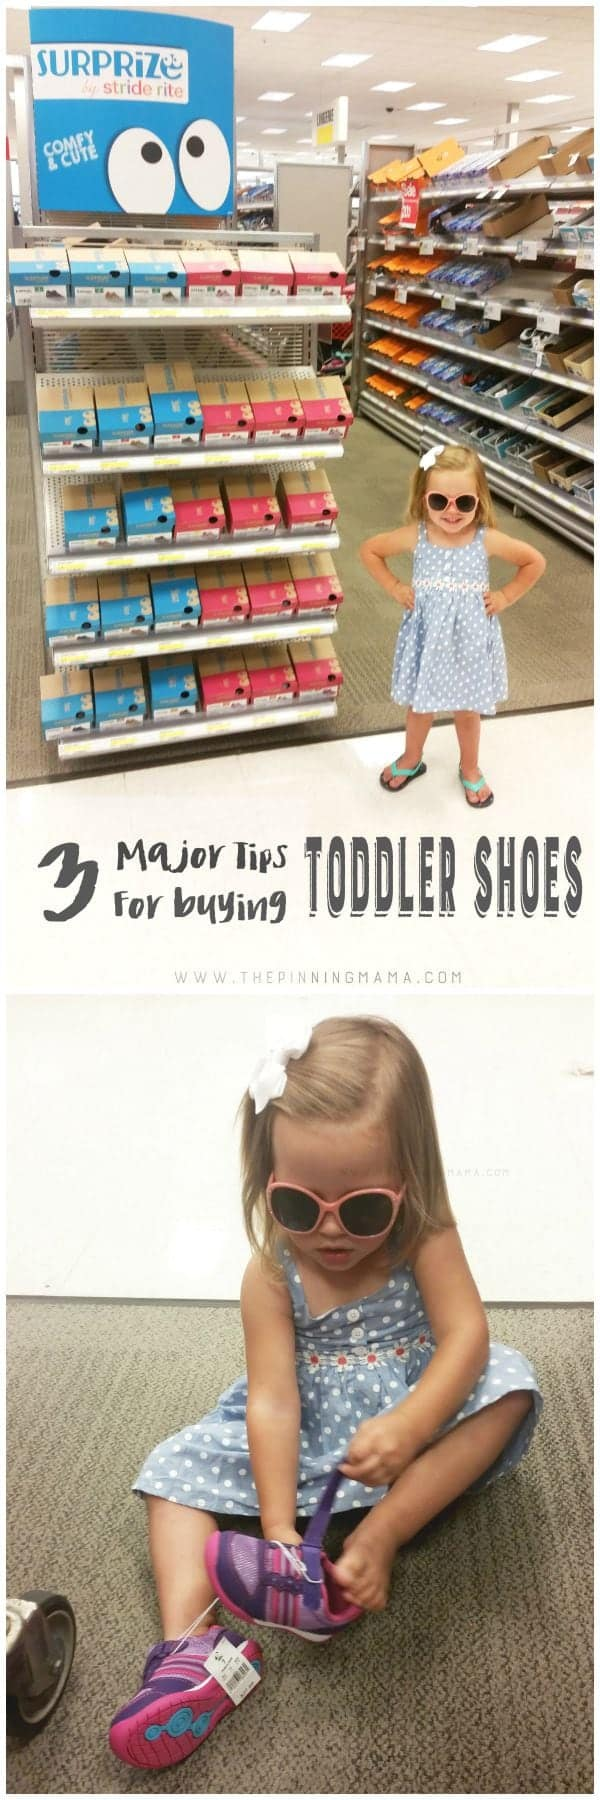 3 Major Tips for Buying Toddler Shoes with the Perfect Fit ...